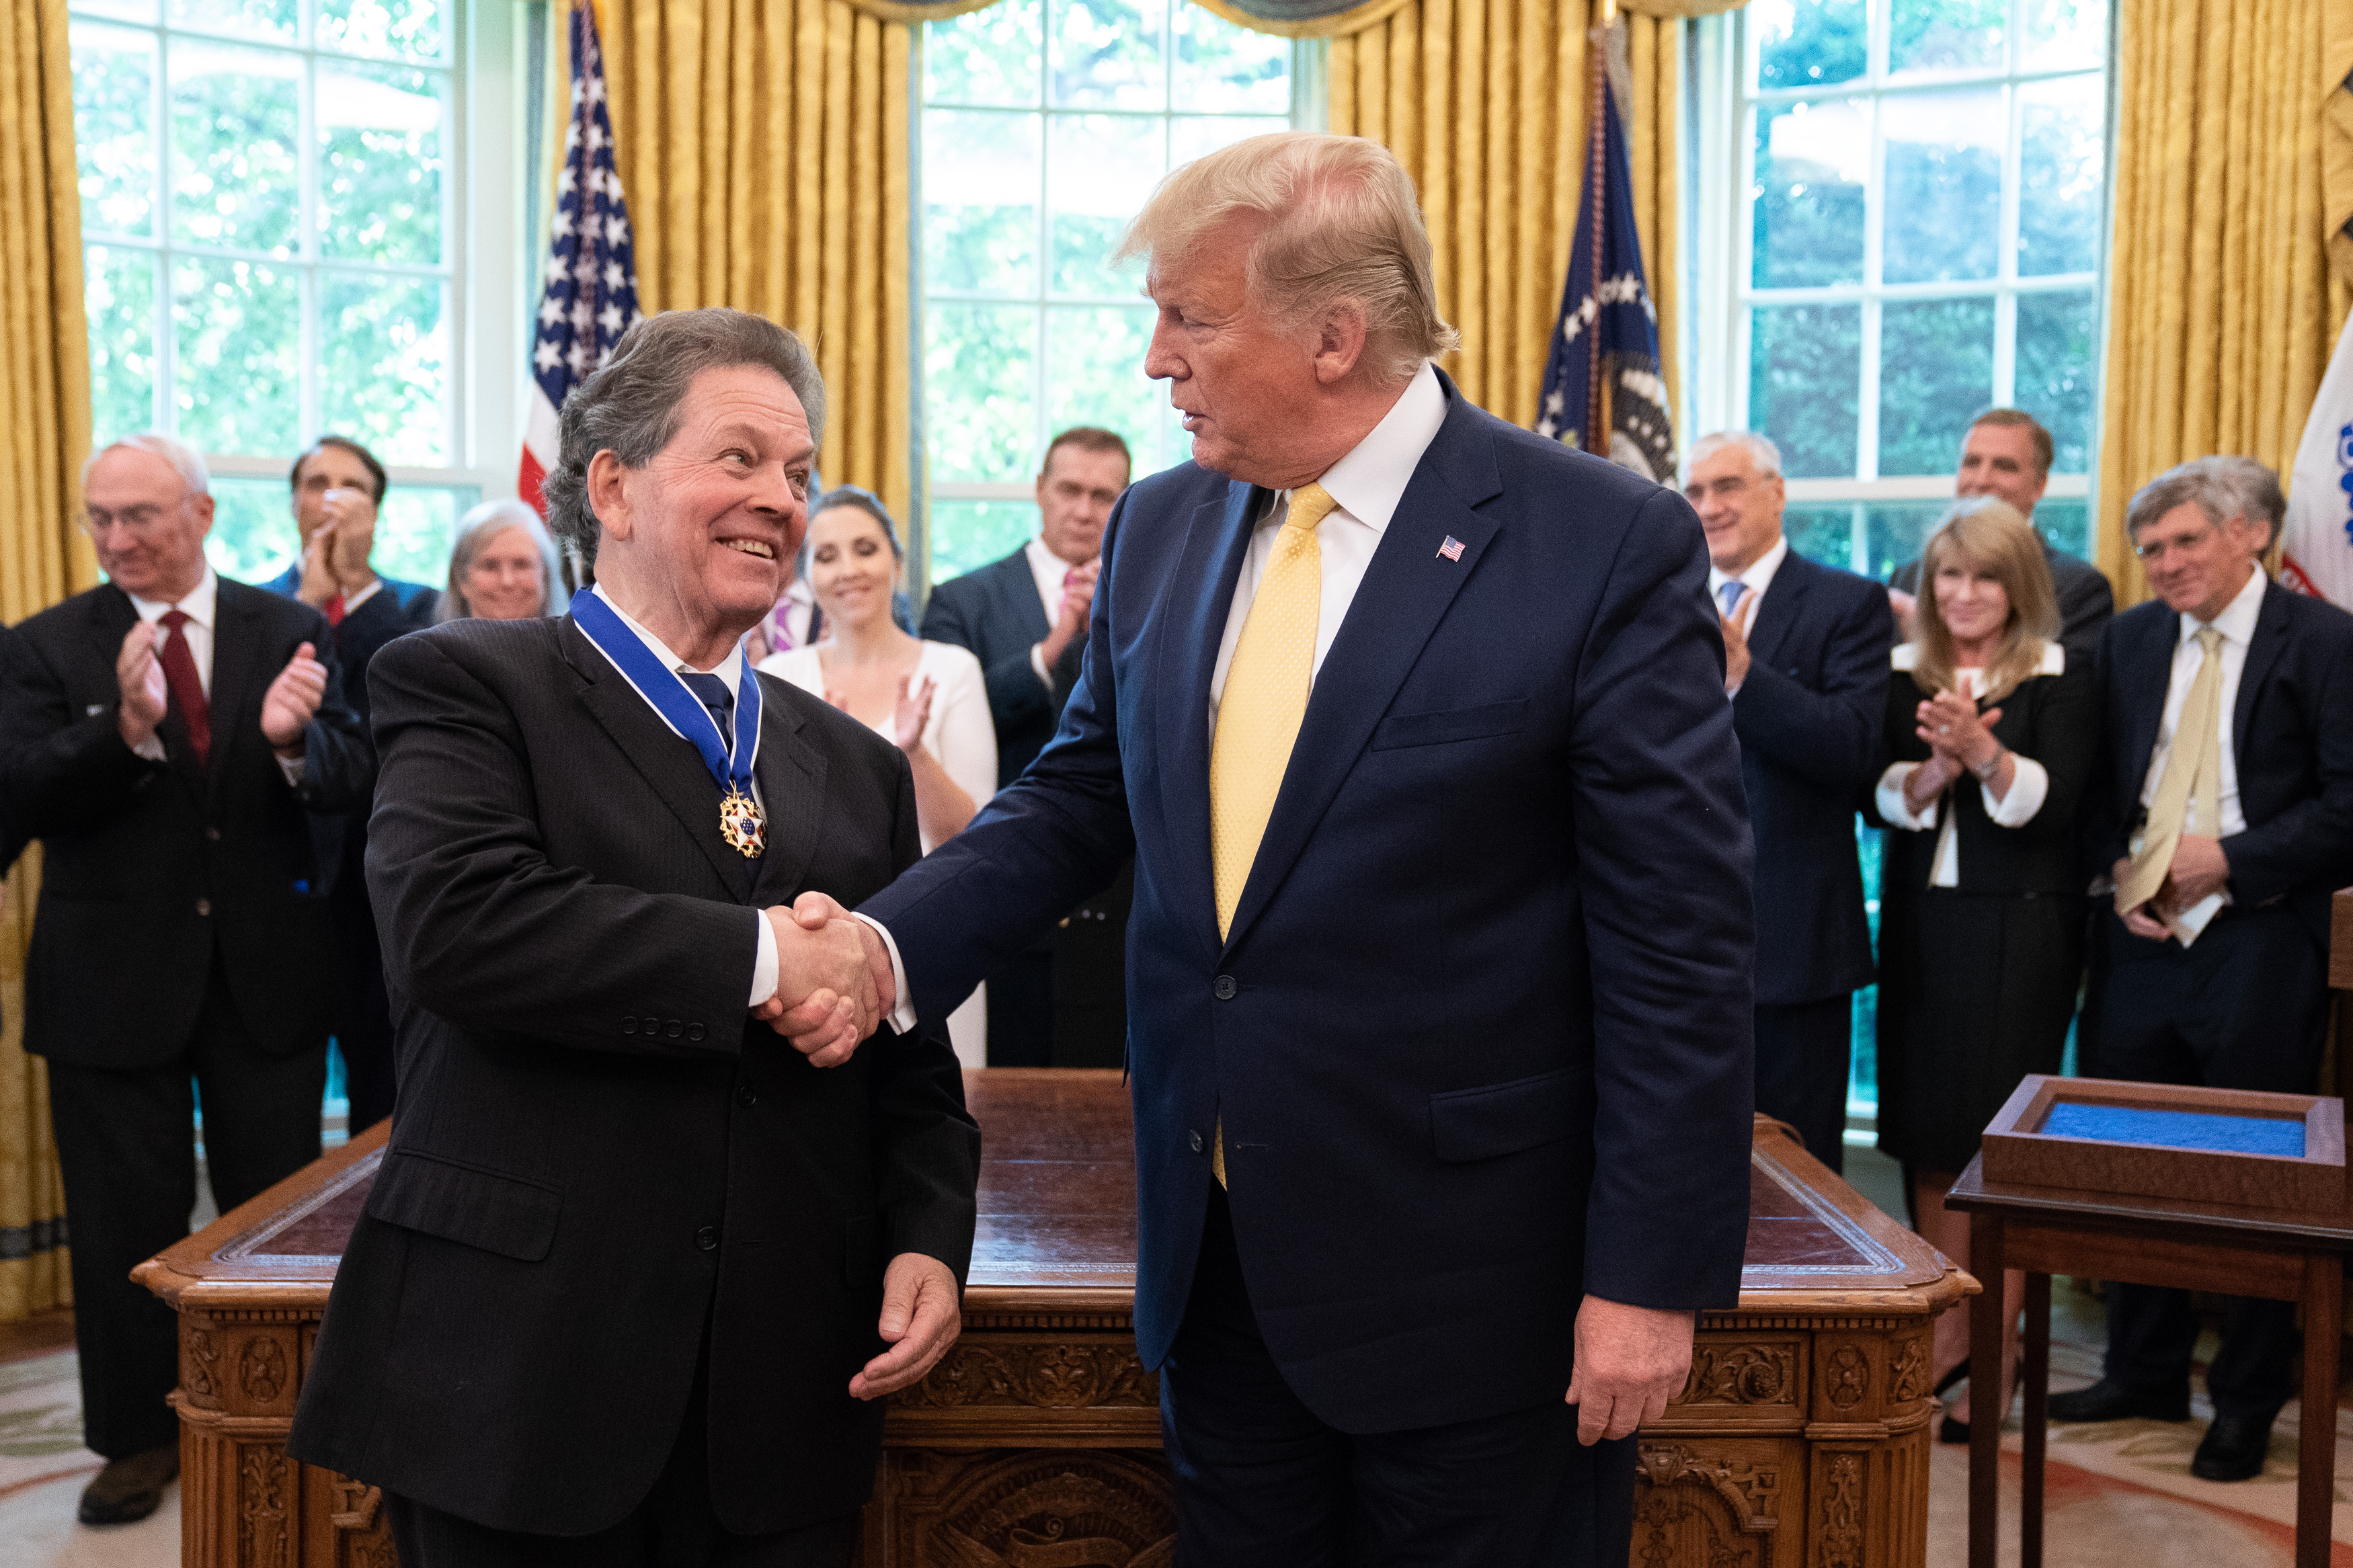 <h1><strong>President Trump Awards Medal of Freedom to Longtime YAF Ally Dr. Arthur Laffer</strong></h1>